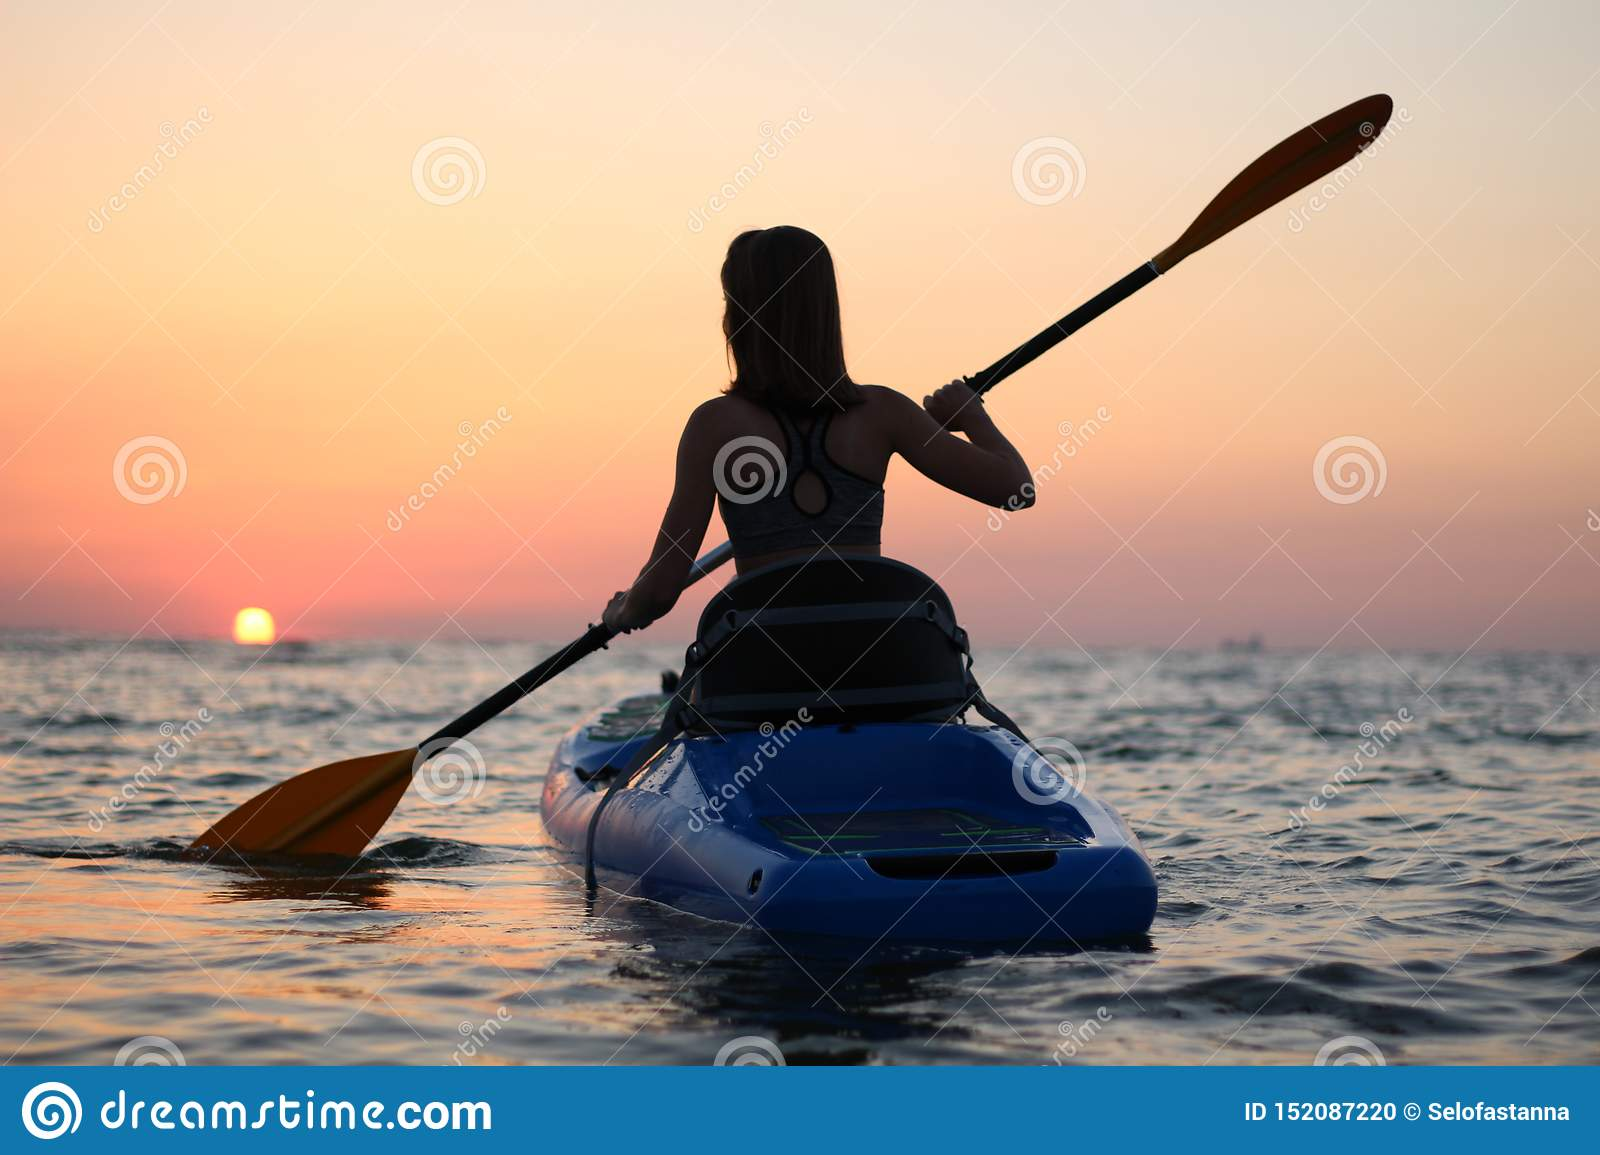 Kayaking Woman in kayak, Girl Rowing in the water of a calm sea